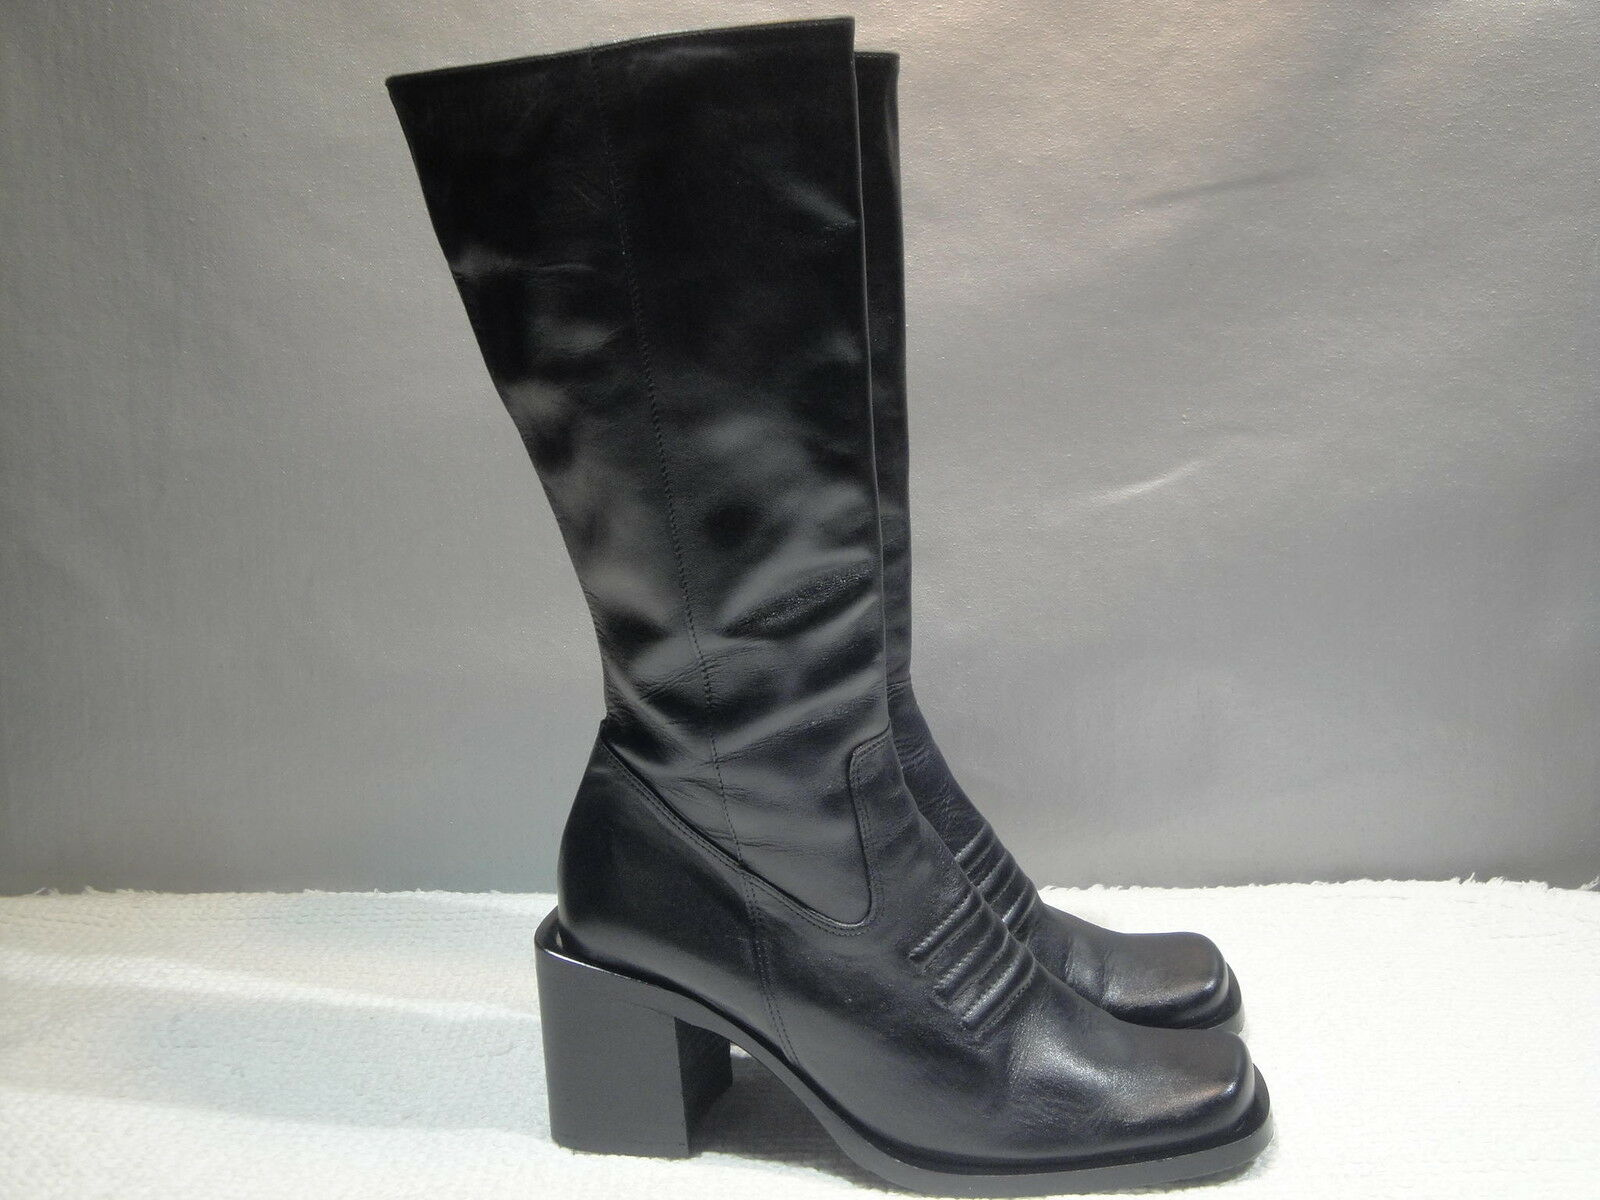 WOMENS 6 KENNETH COLE REACTION GIDDY-UP BLACK LEATHER FASHION TALL RIDING BOOTS